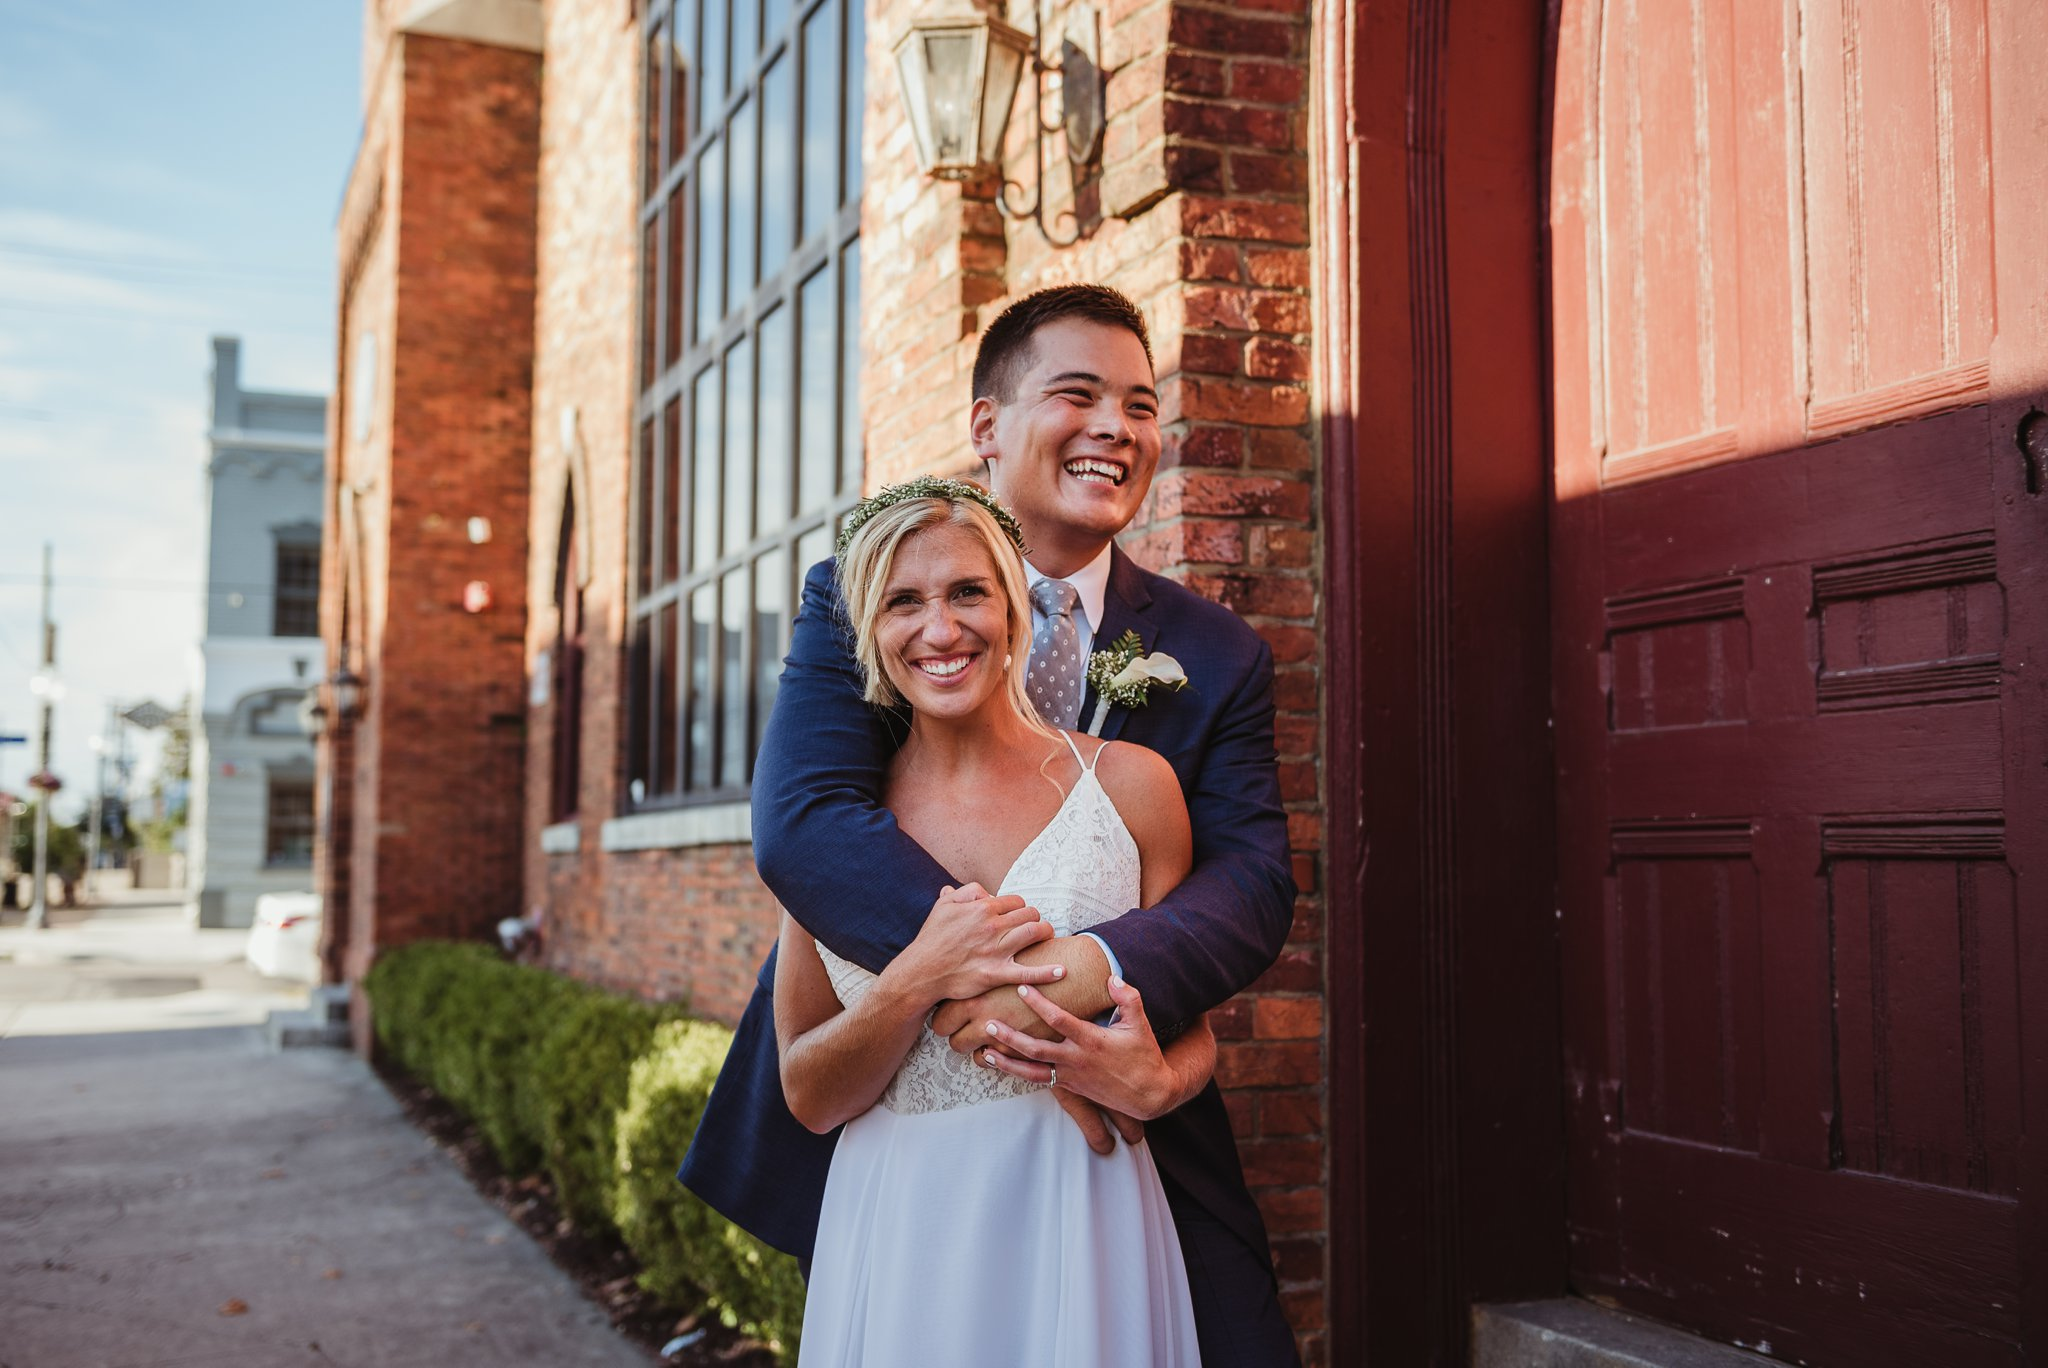 The bride and groom pose for Rose Trail Images after their wedding ceremony in Wilmington, North Carolina.